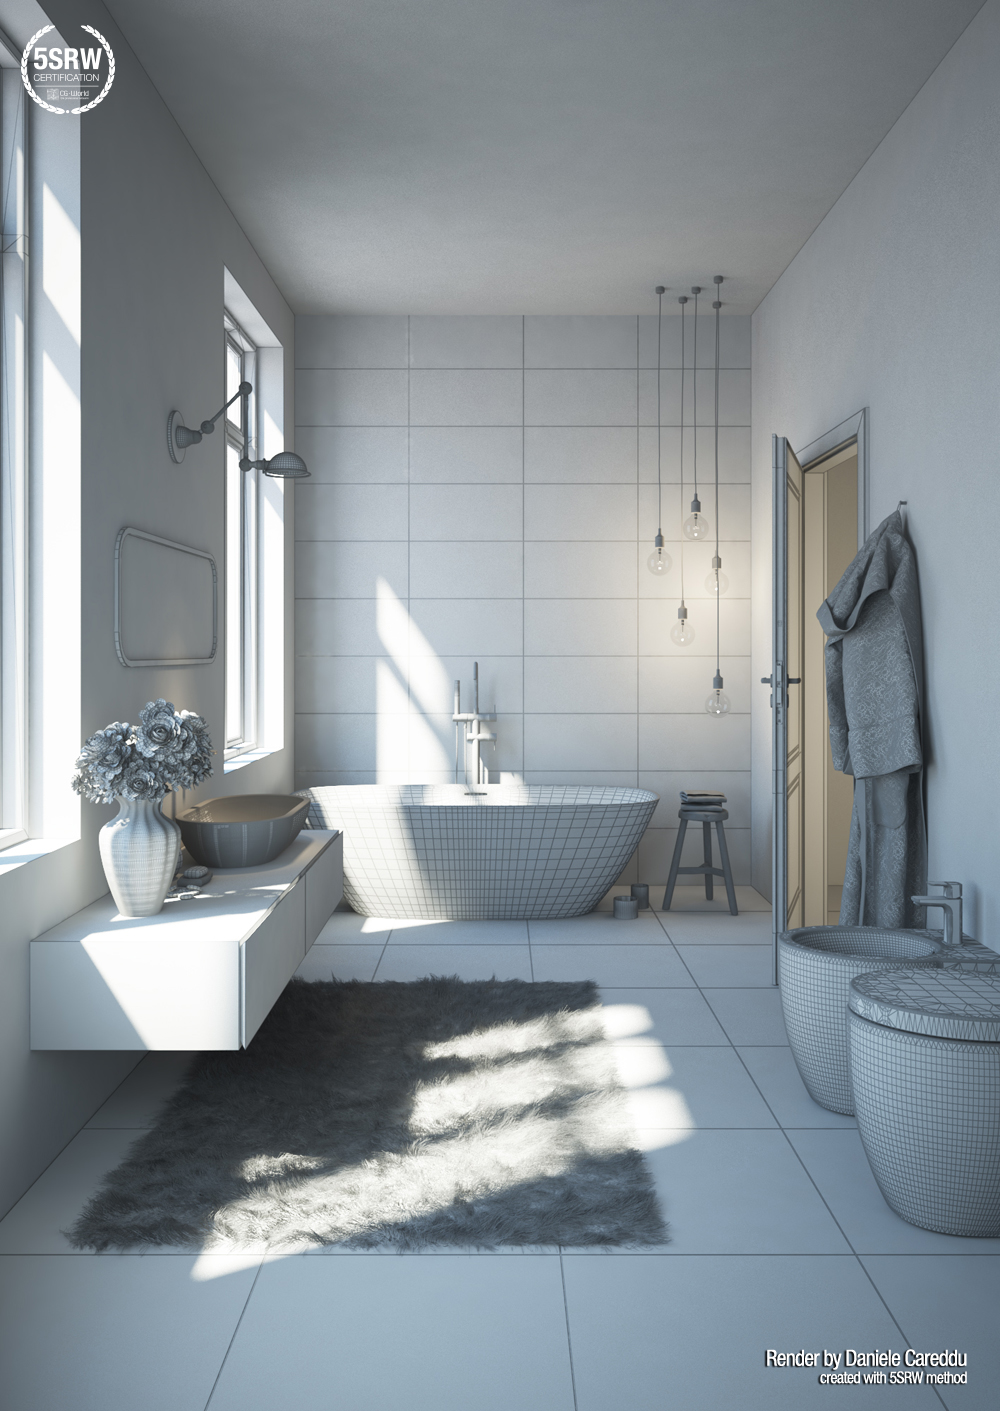 Elegant Bathroom / Daniele Careddu With 5SRW